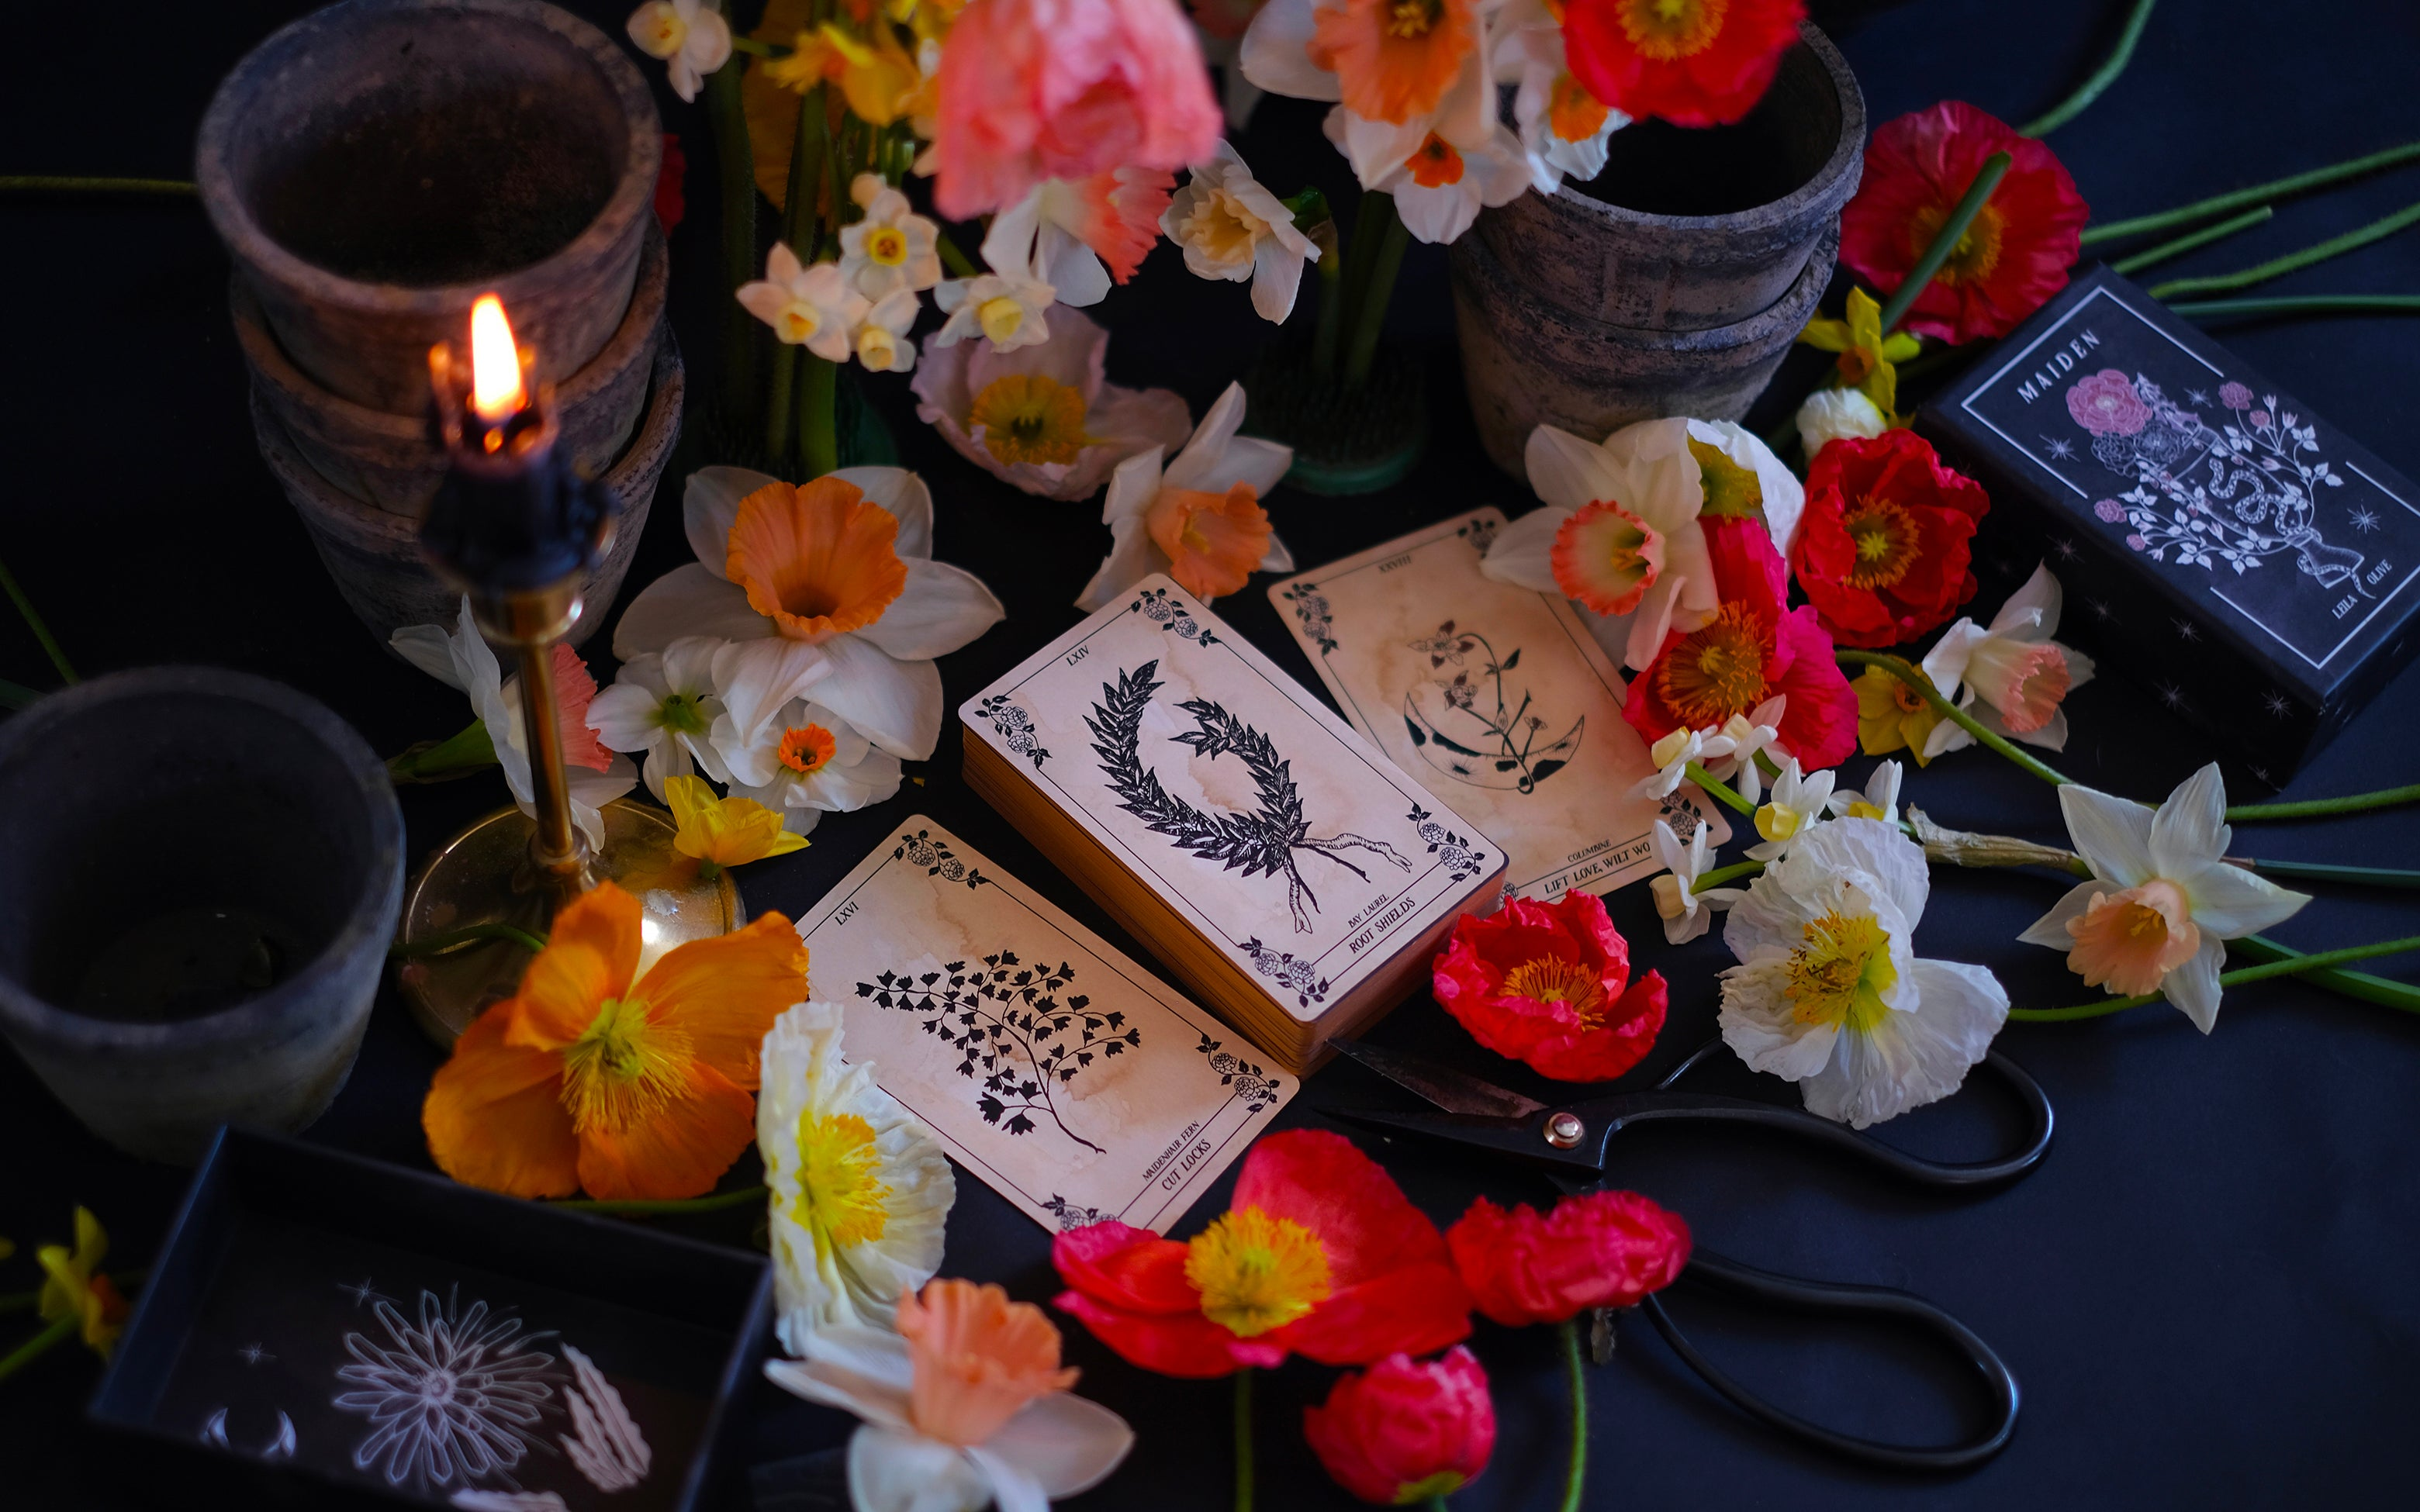 Botanical tarot deck, illustrated by hand and rooted in classical Tarot interpretations drawn closer to home.